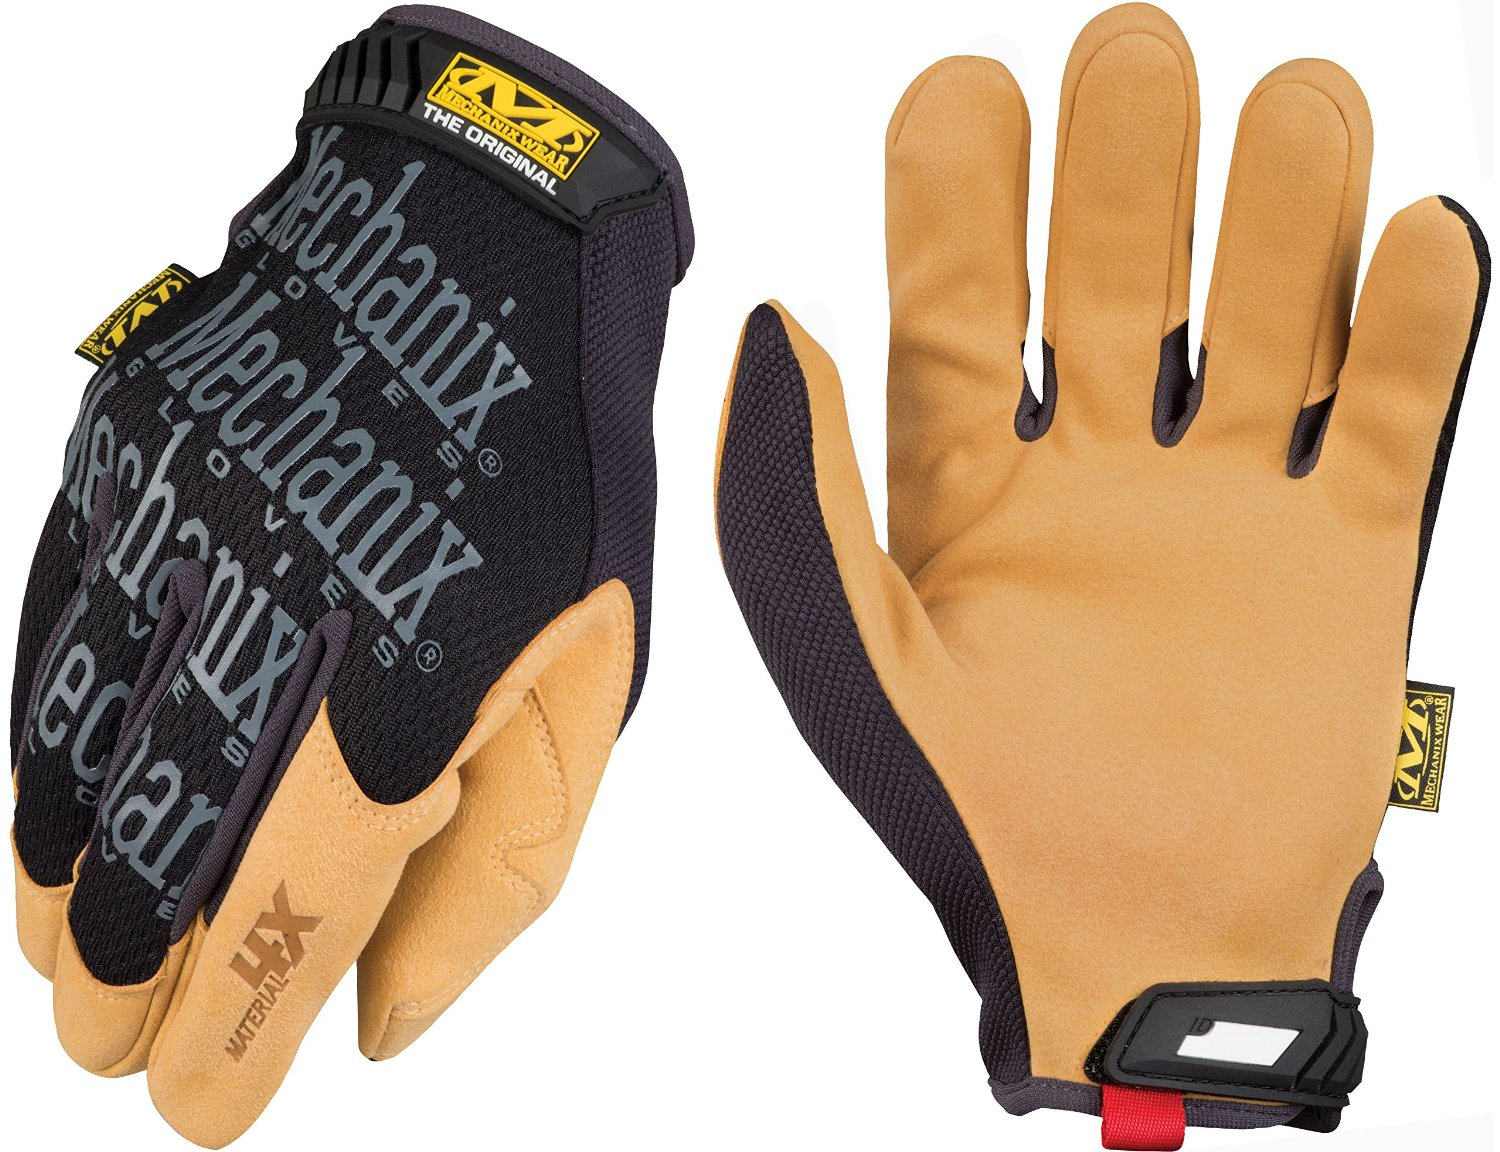 Mechanix Wear Material4X Original